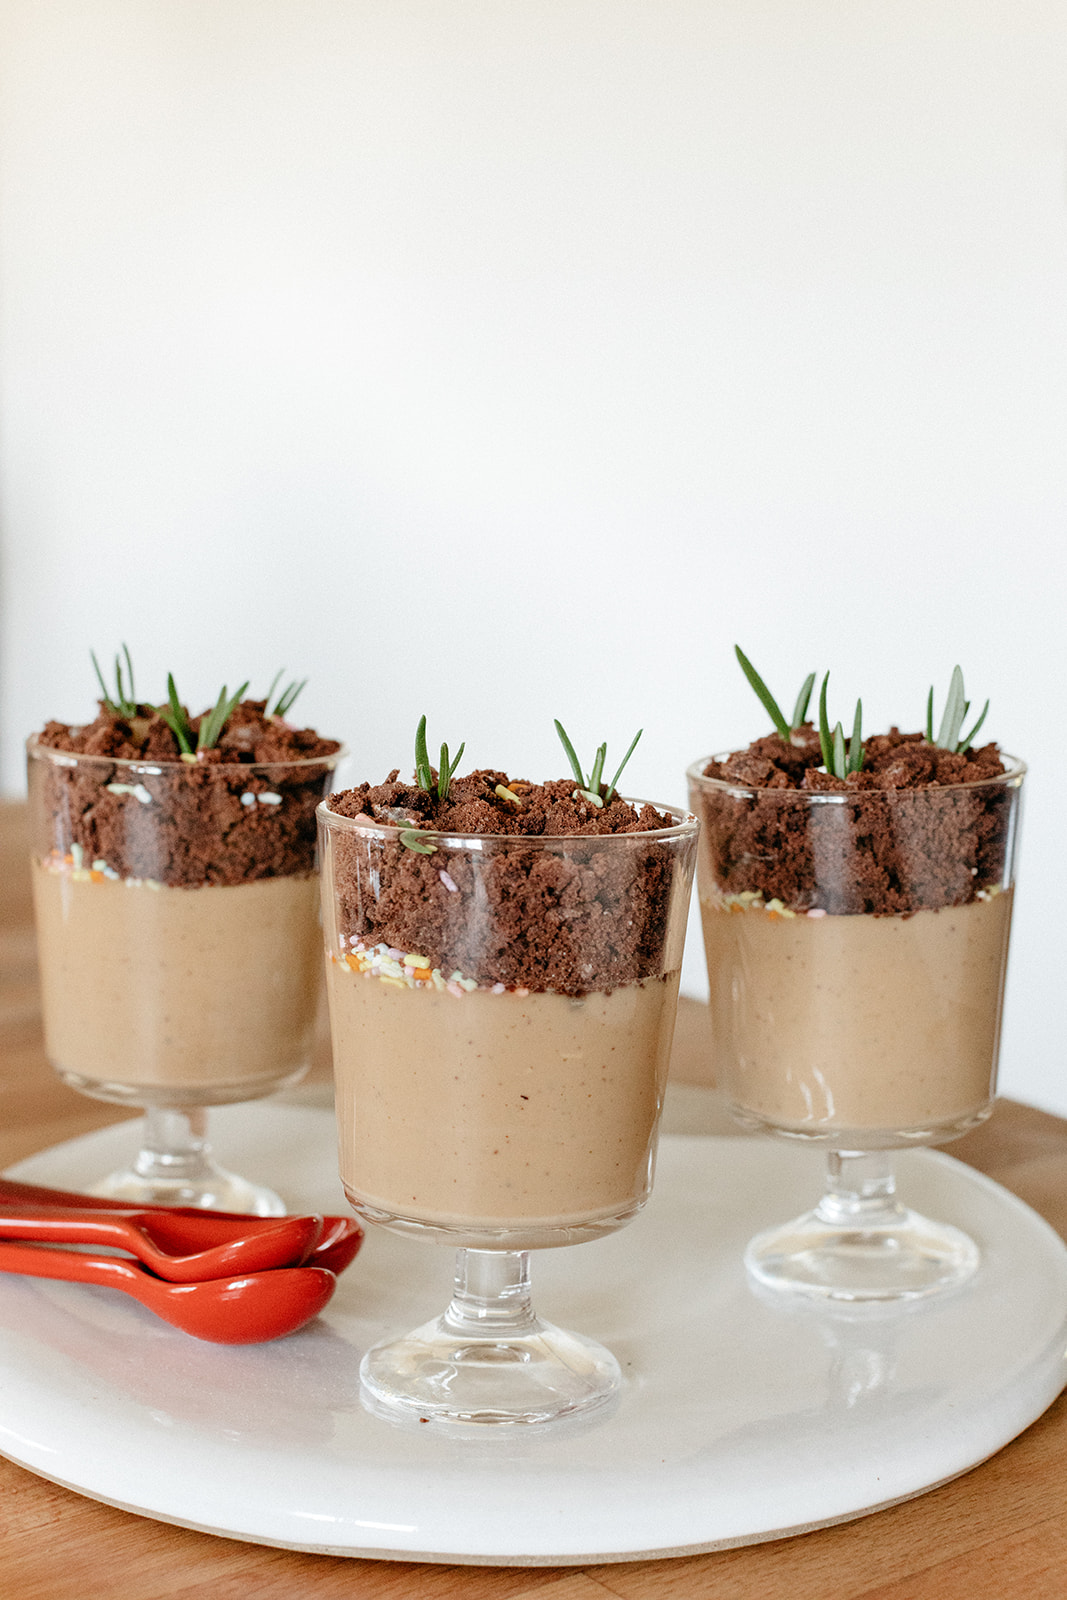 molly-yeh-butterscotch-pudding-dirt-cups12.jpg